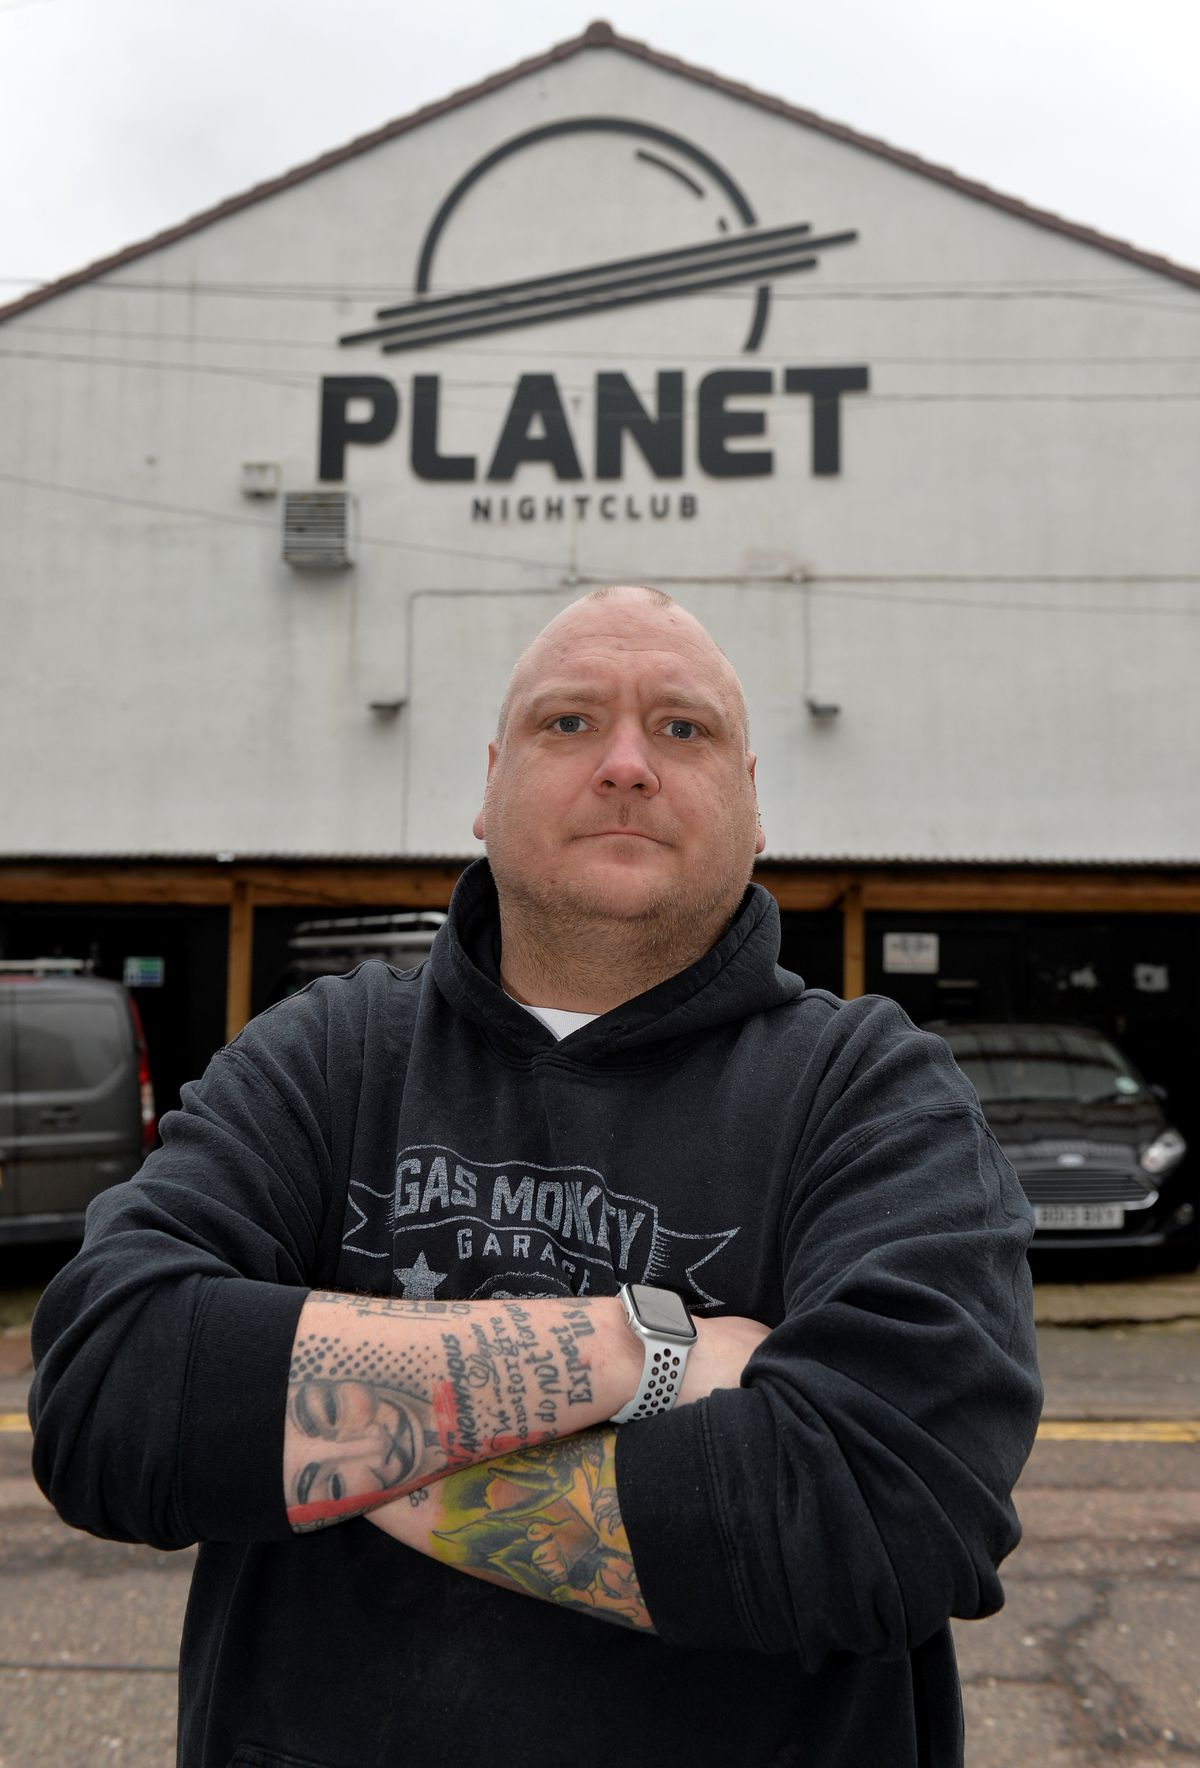 Michael Ansell owns Planet, which has been shut for 66 weeks